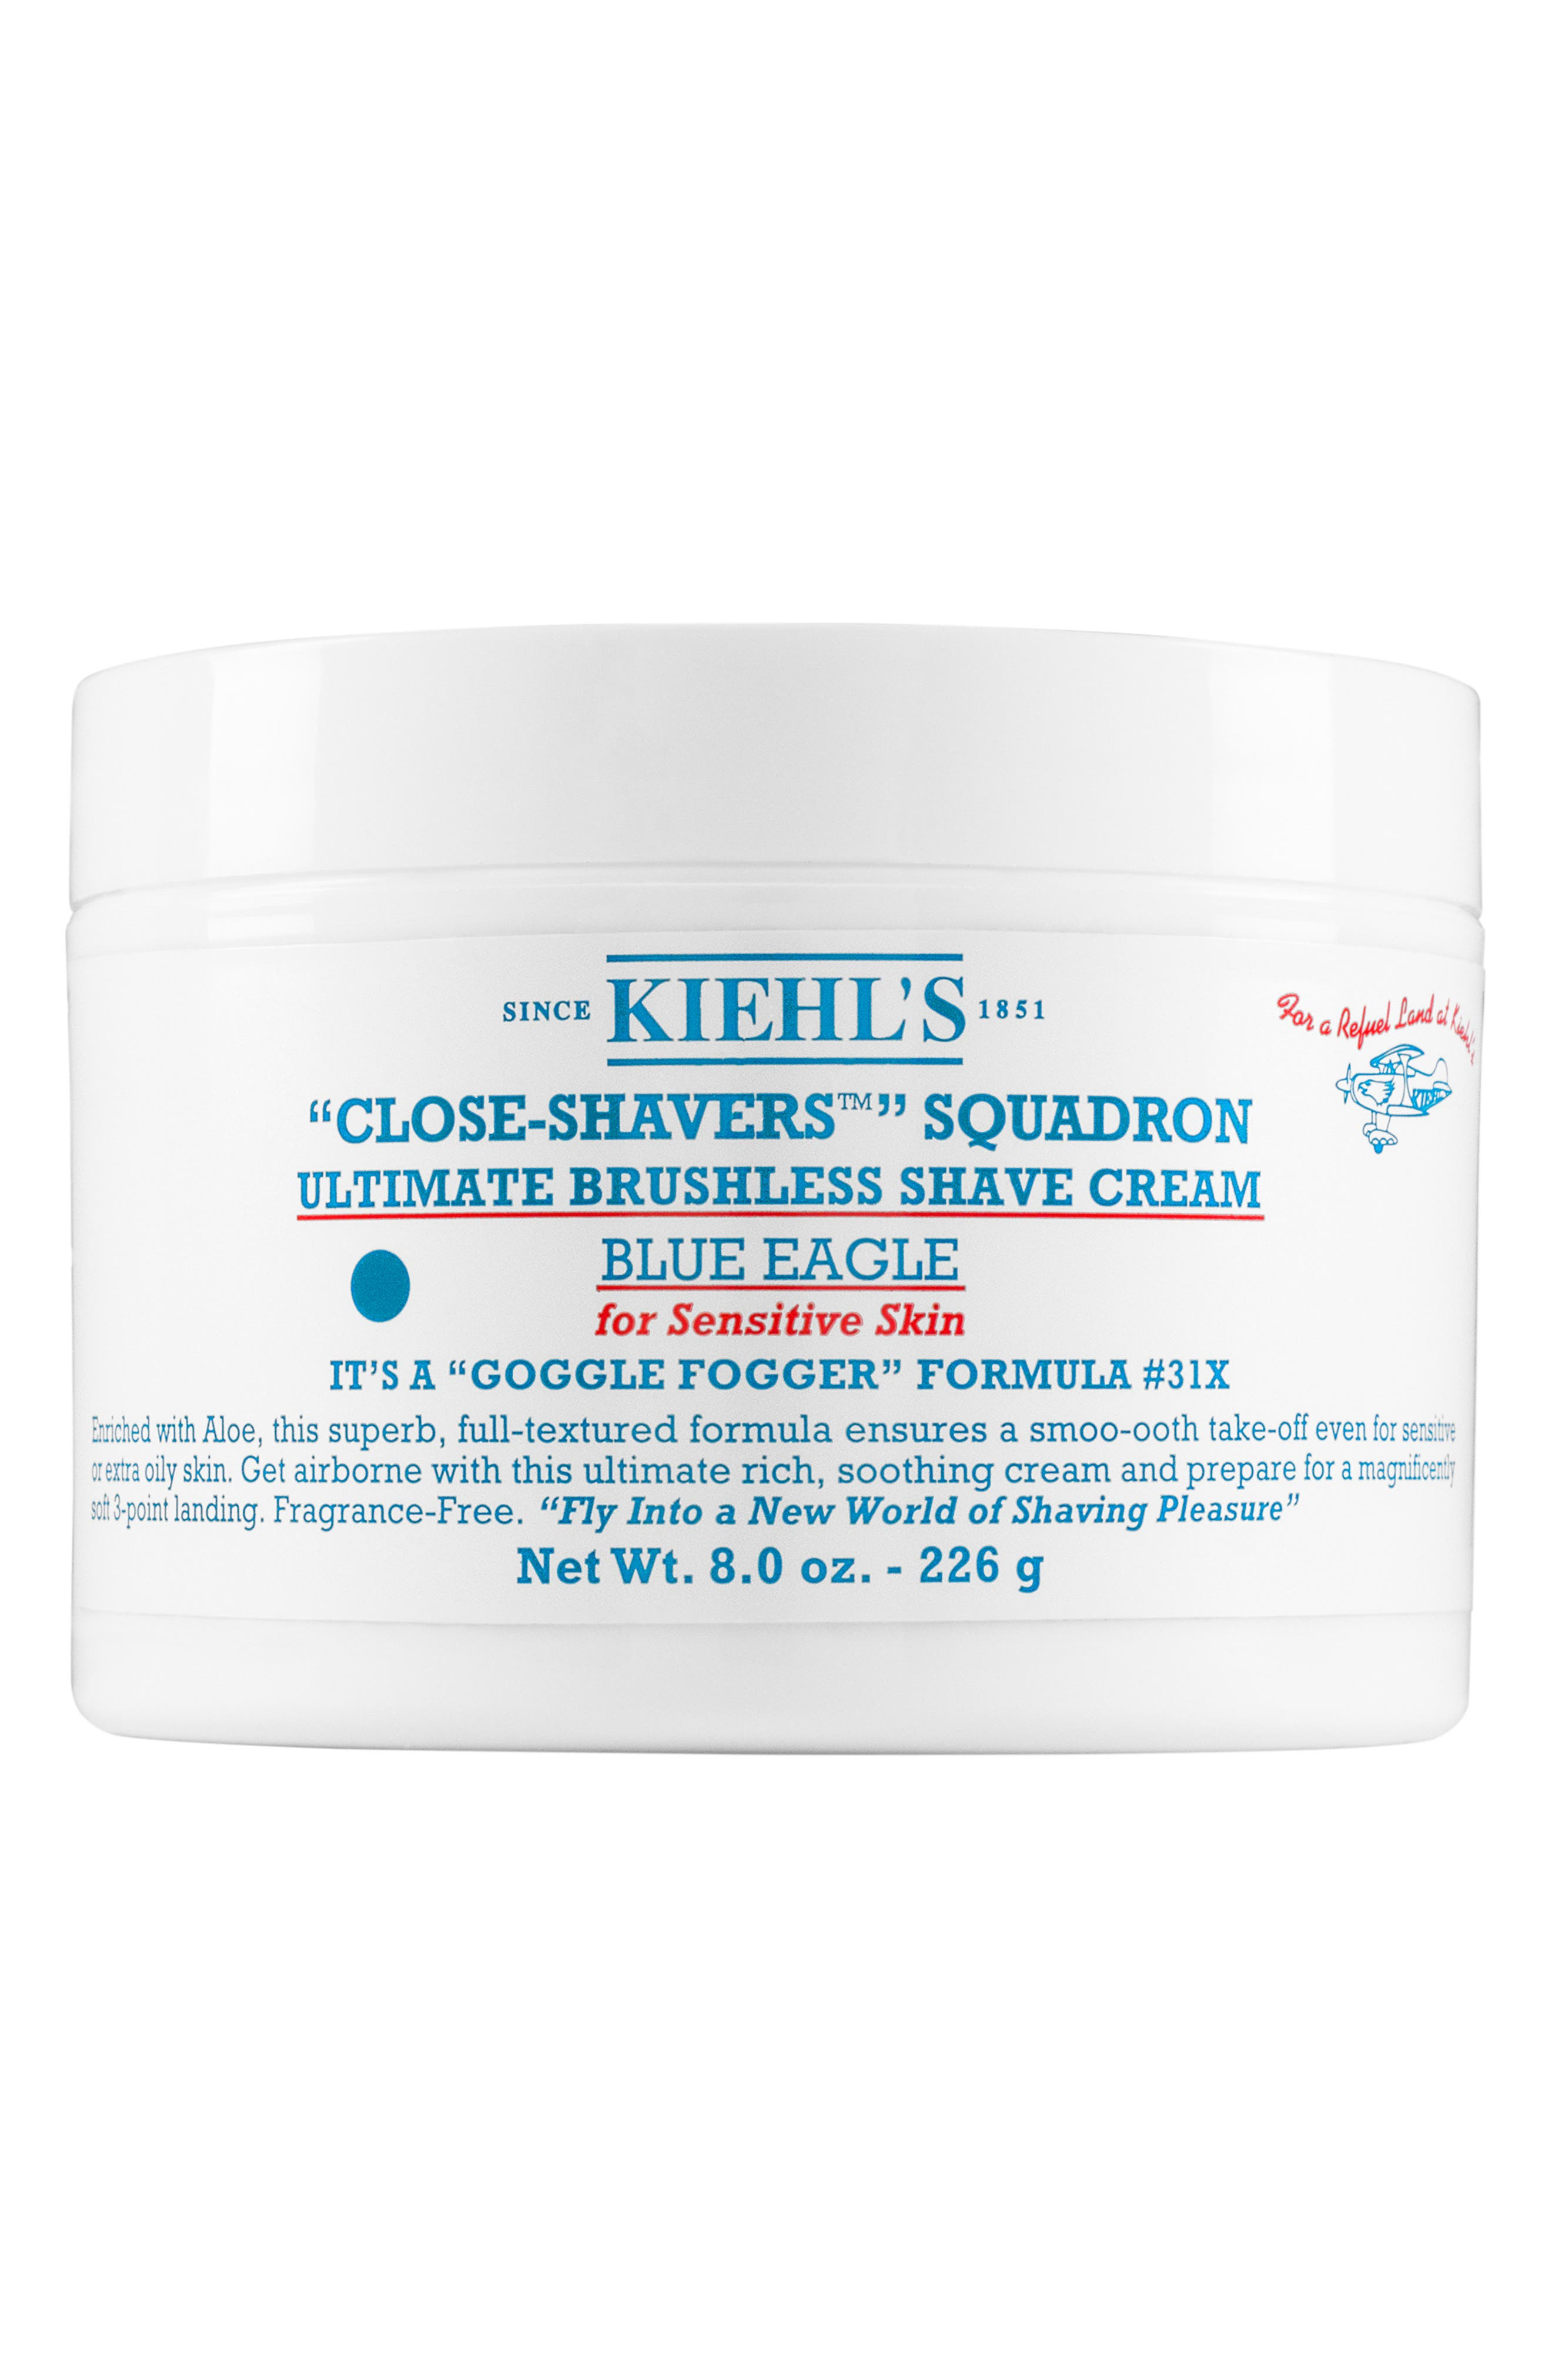 Kiehl's Since 1851 Blue Eagle Ultimate Brushless Shave Cream